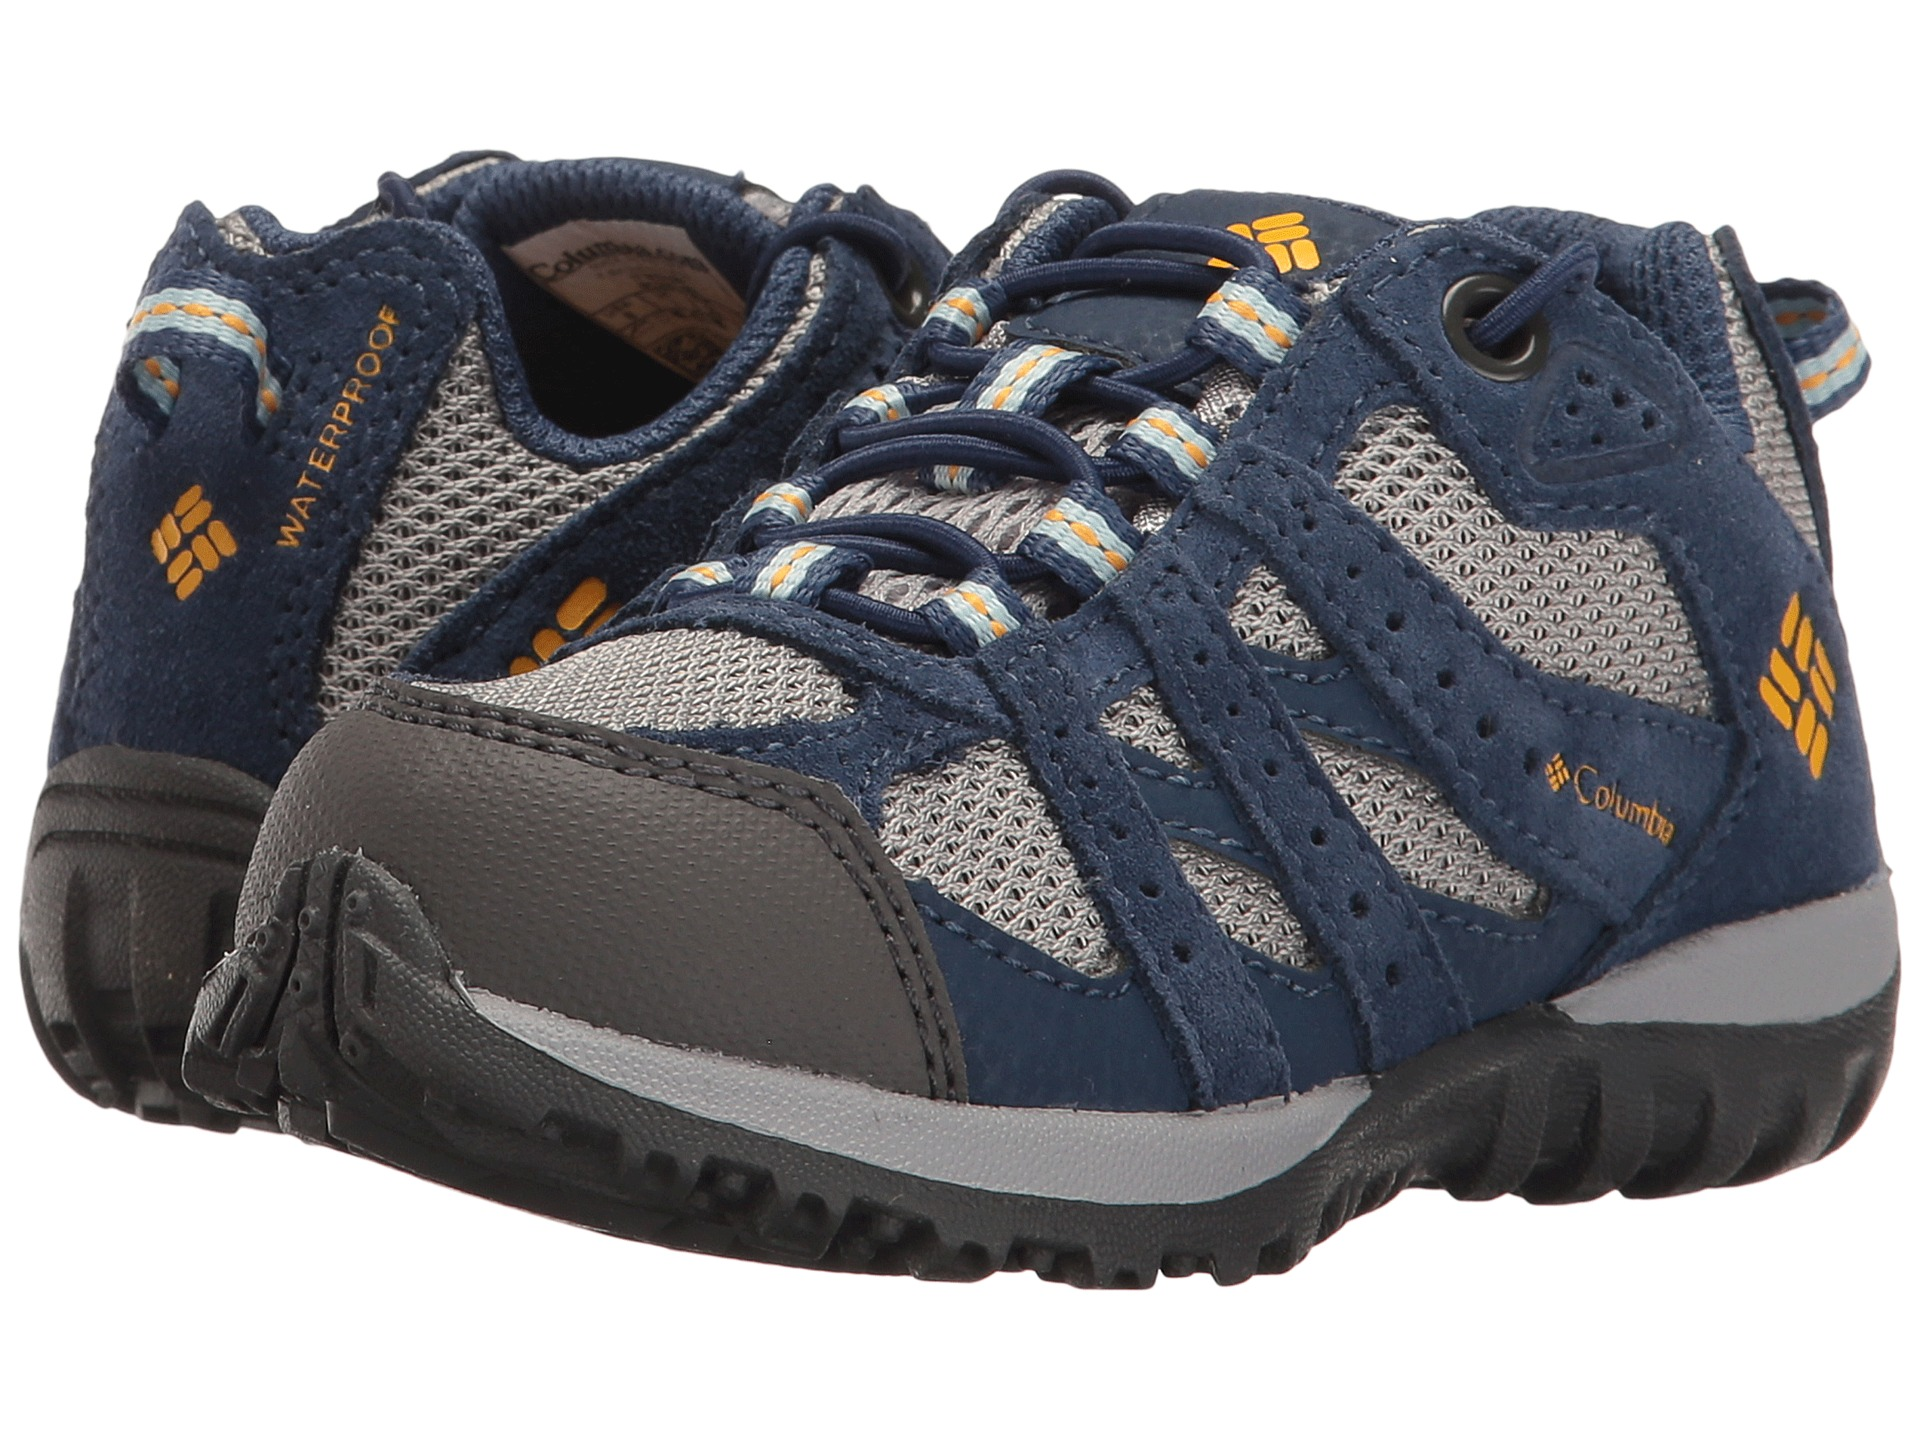 Columbia Redmond Explore Boys Waterproof Hiking Shoes Size